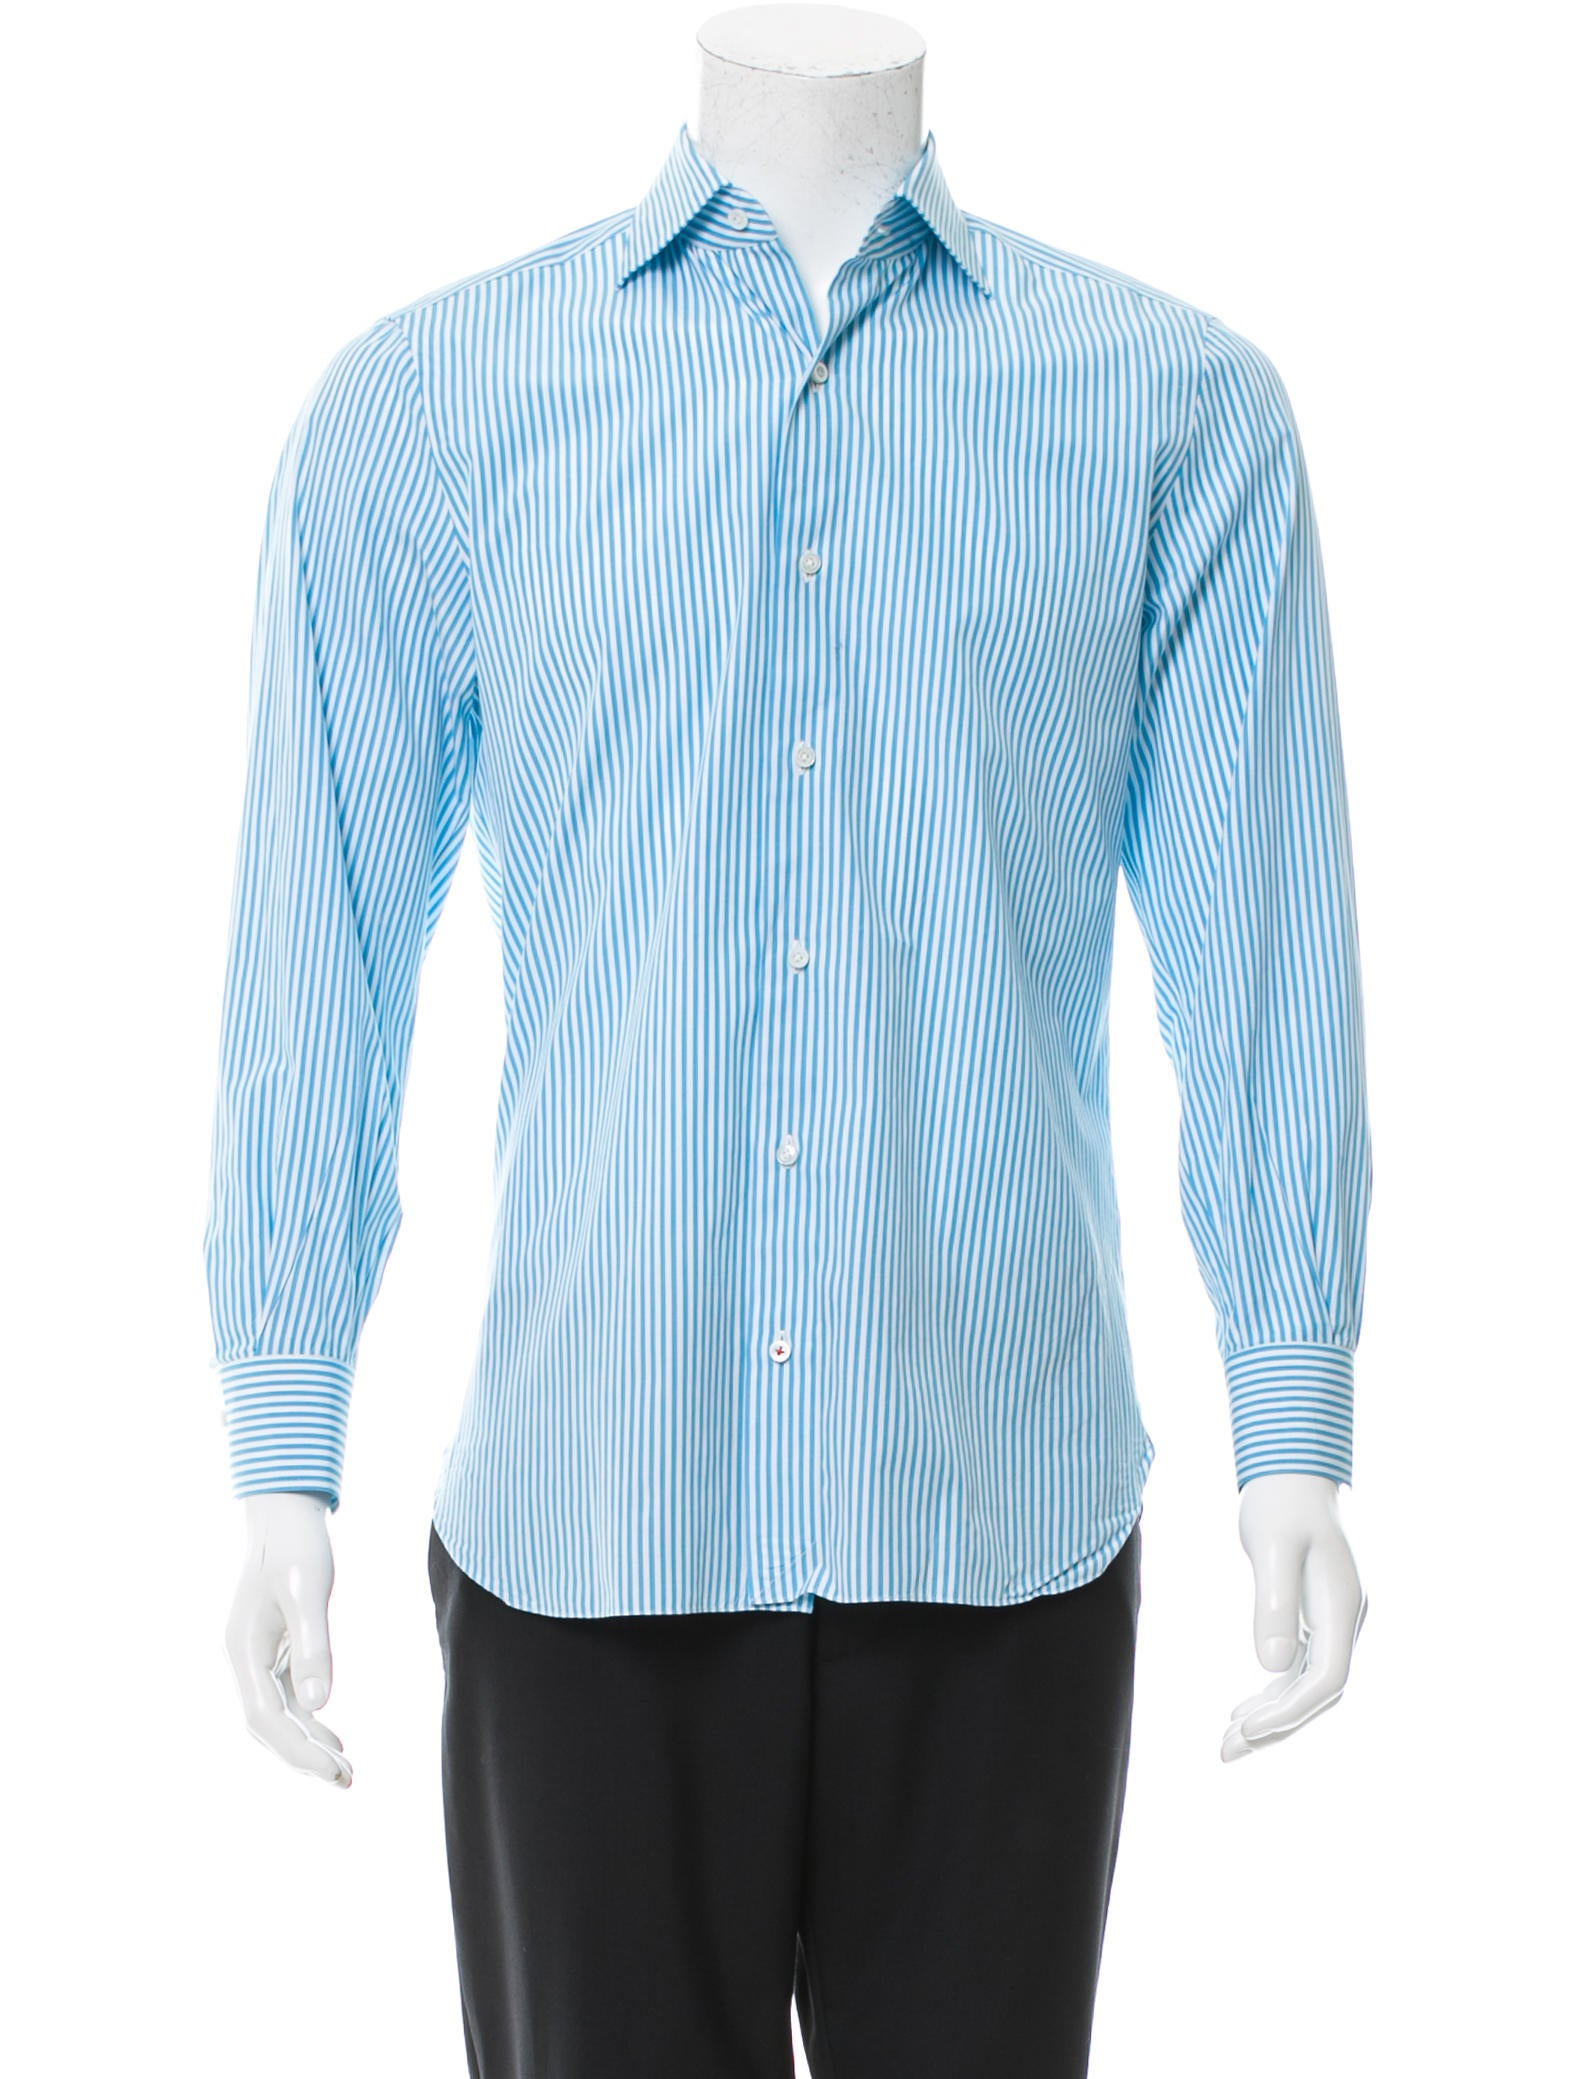 Isaia striped button up shirt clothing isi20271 the for Striped button up shirt mens